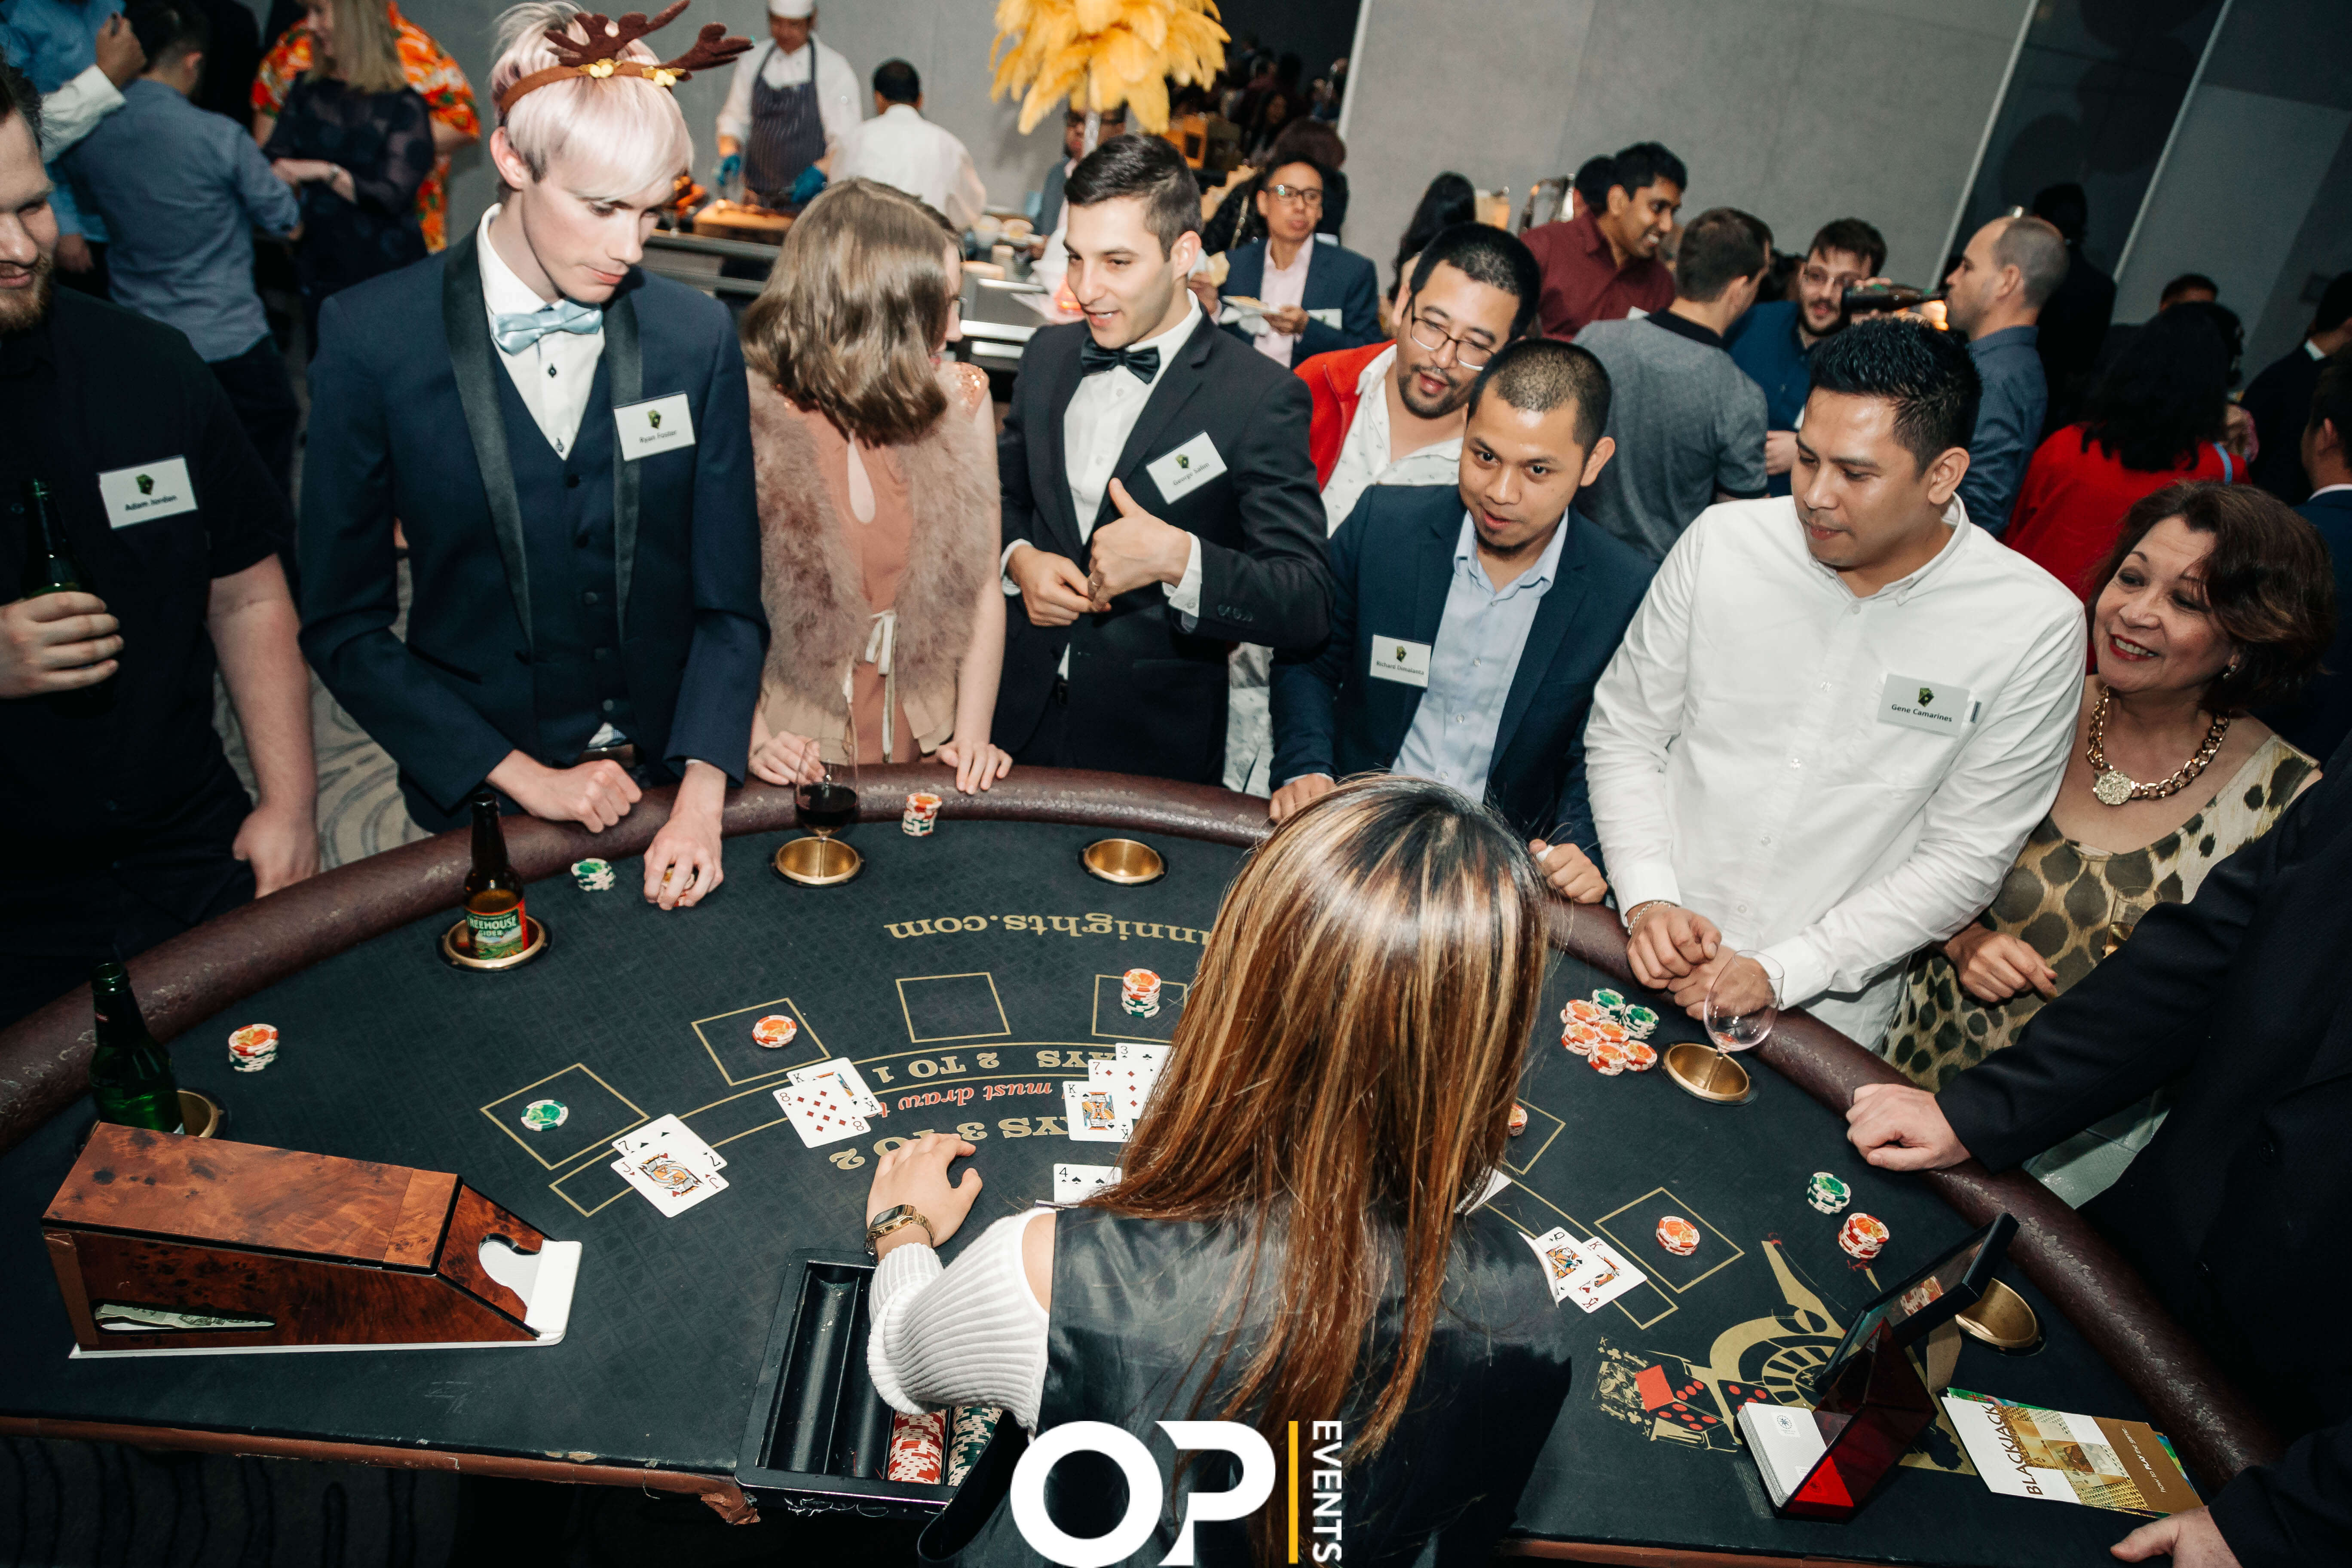 How many people can play blackjack